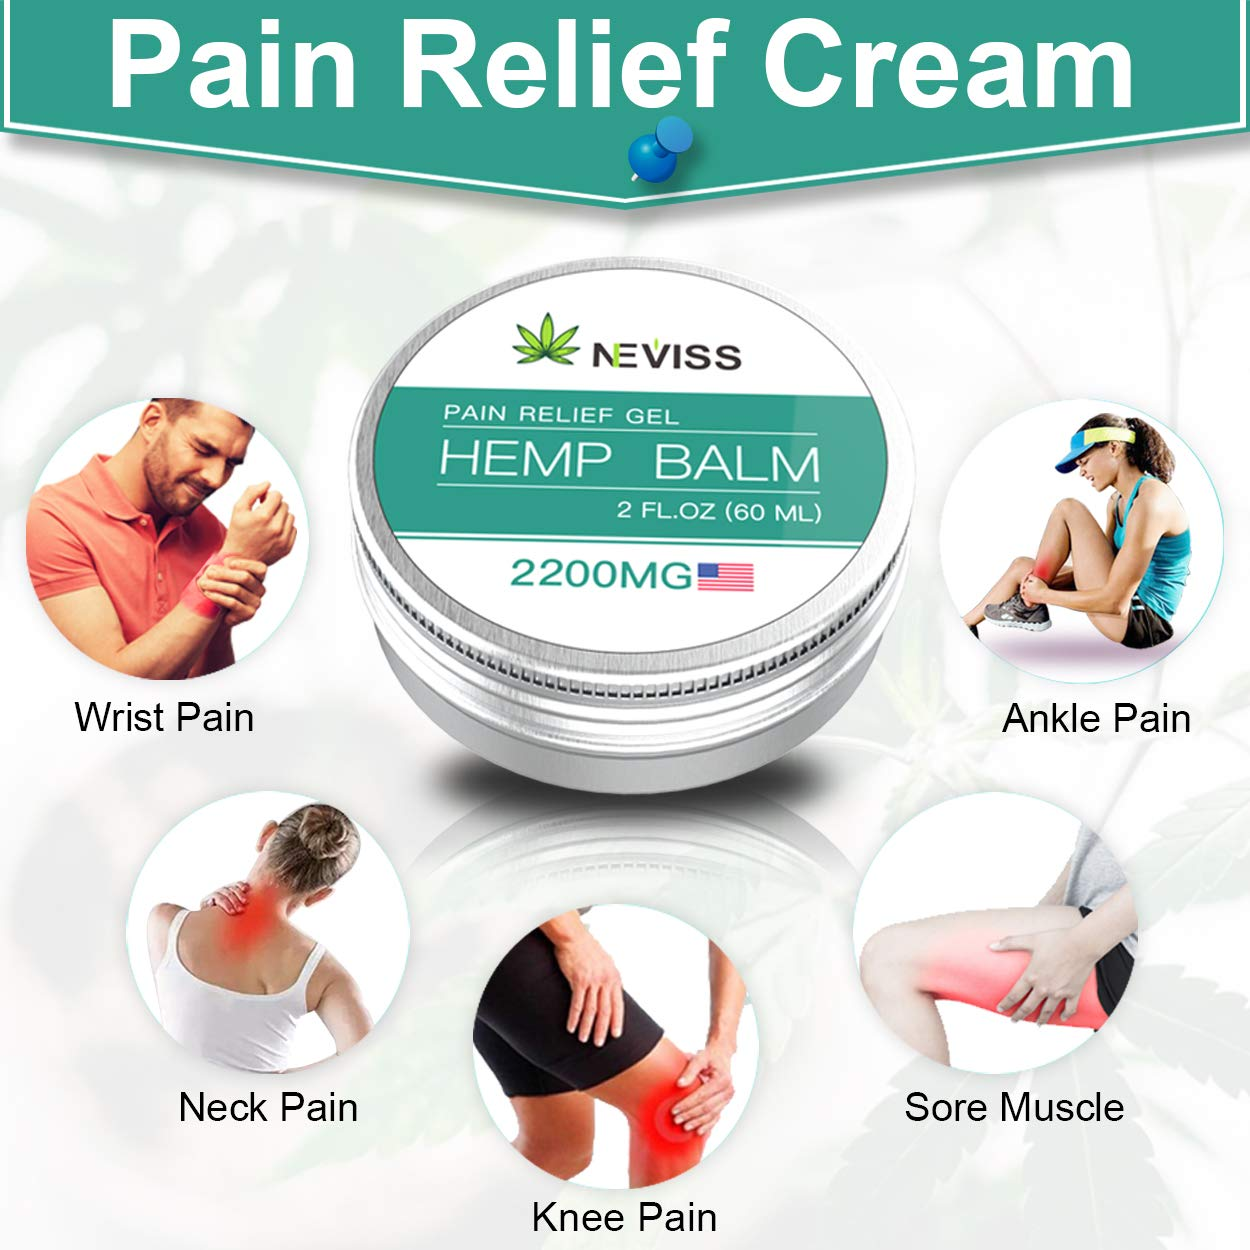 Hemp Gel for Pain Relief, Organic Hemp Active Gel, Natural Hemp Pain Relief Cream for Back, Knee, Neck, Nerve & Joint Pain, Premium Hemp Herbal Extract Balm for Inflammation & Sore Muscles